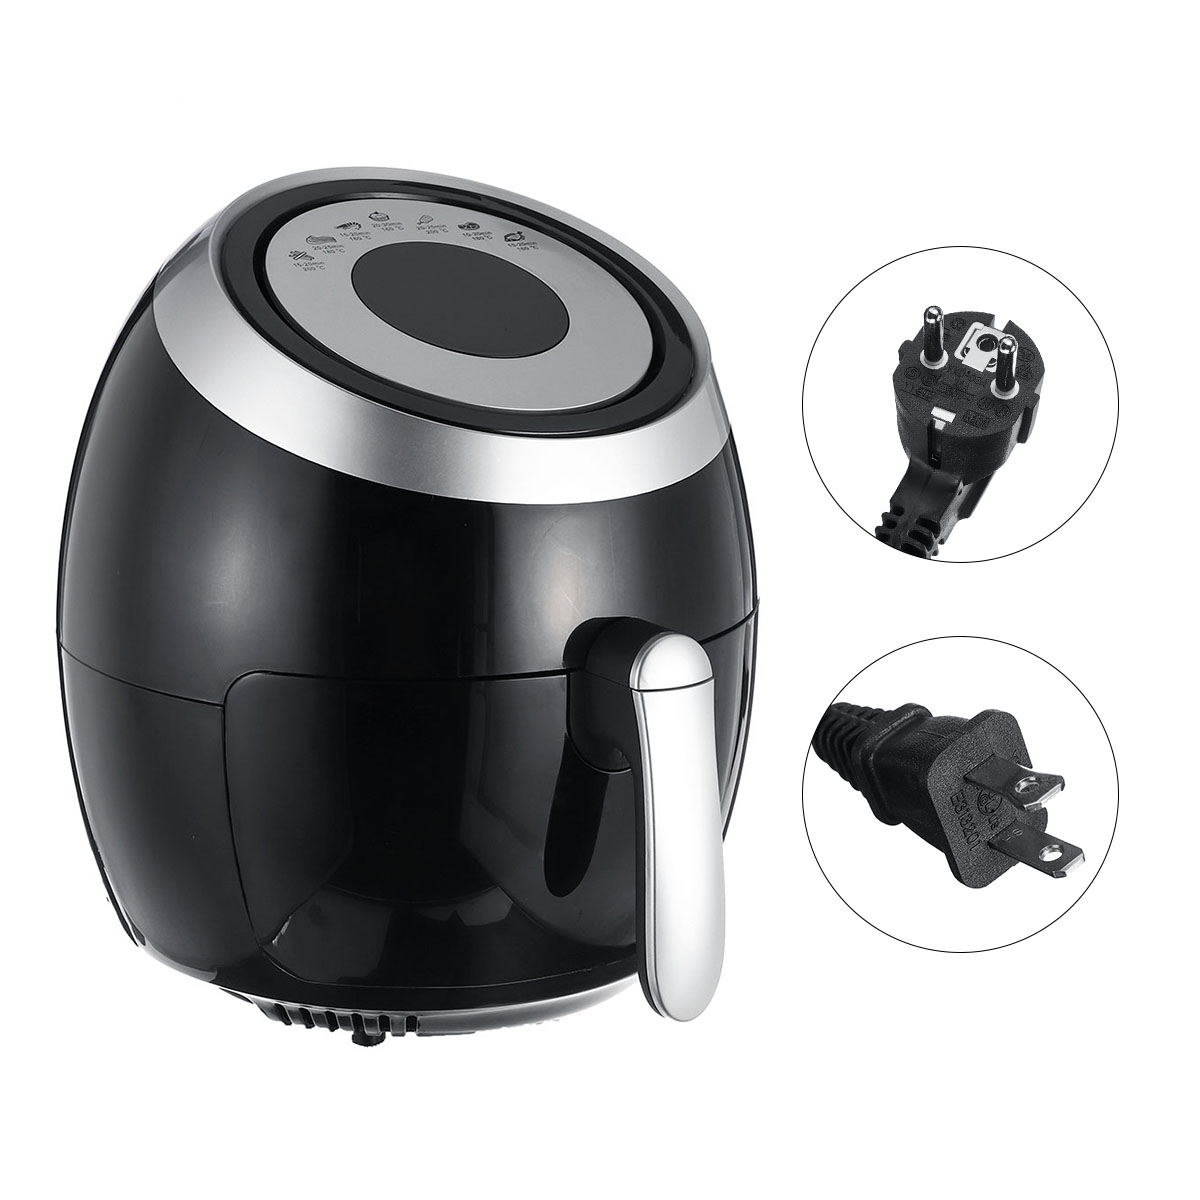 5.5L Electric Air Fryer Pan Chip Oil Free Oven Cooker Pot & Basket 1500W Home